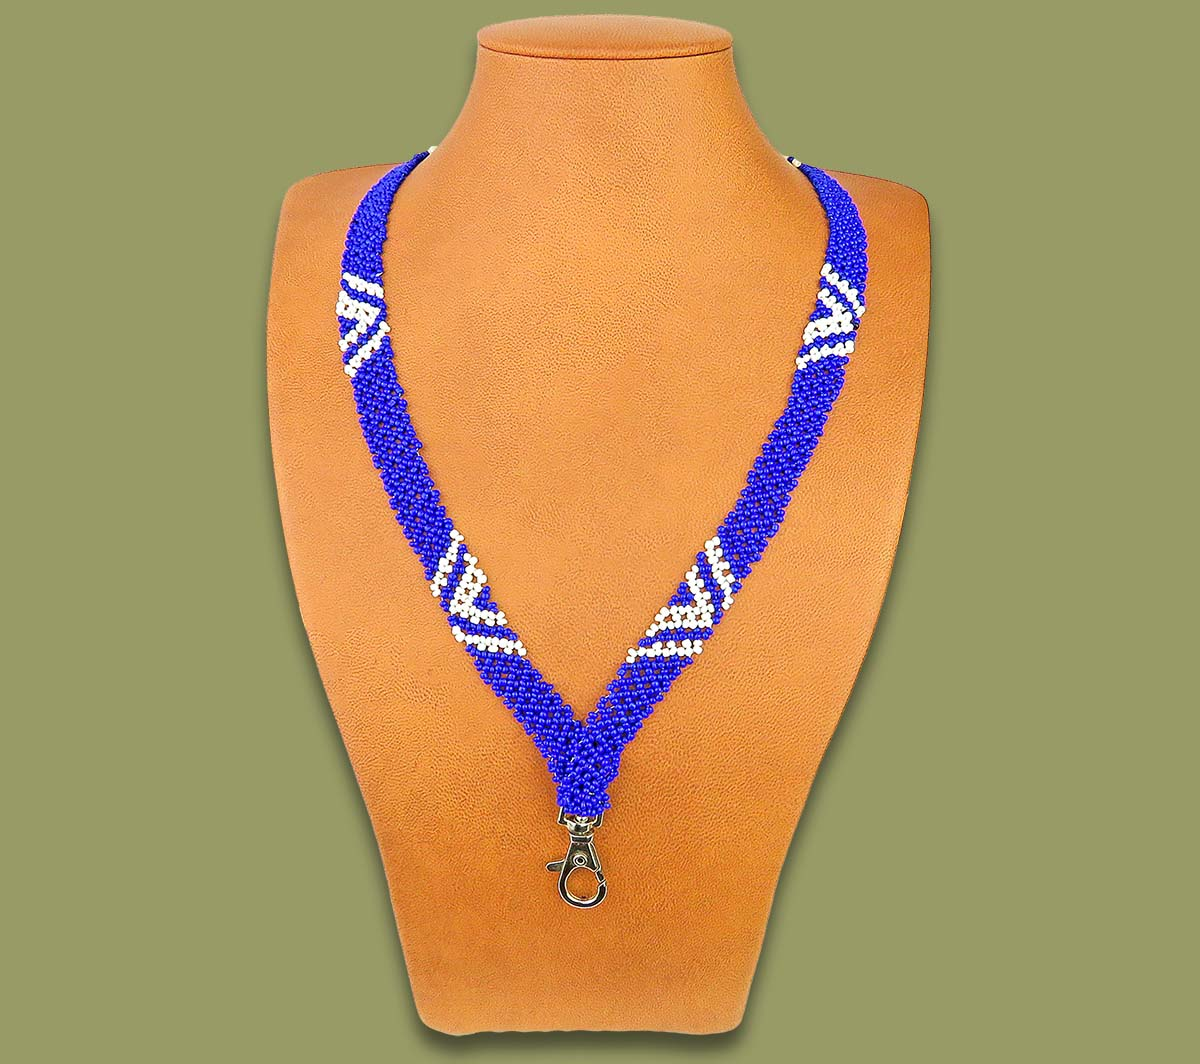 Completely new Beaded Lanyards African: Beaded Lanyard Zulu V Design Blue White YL66